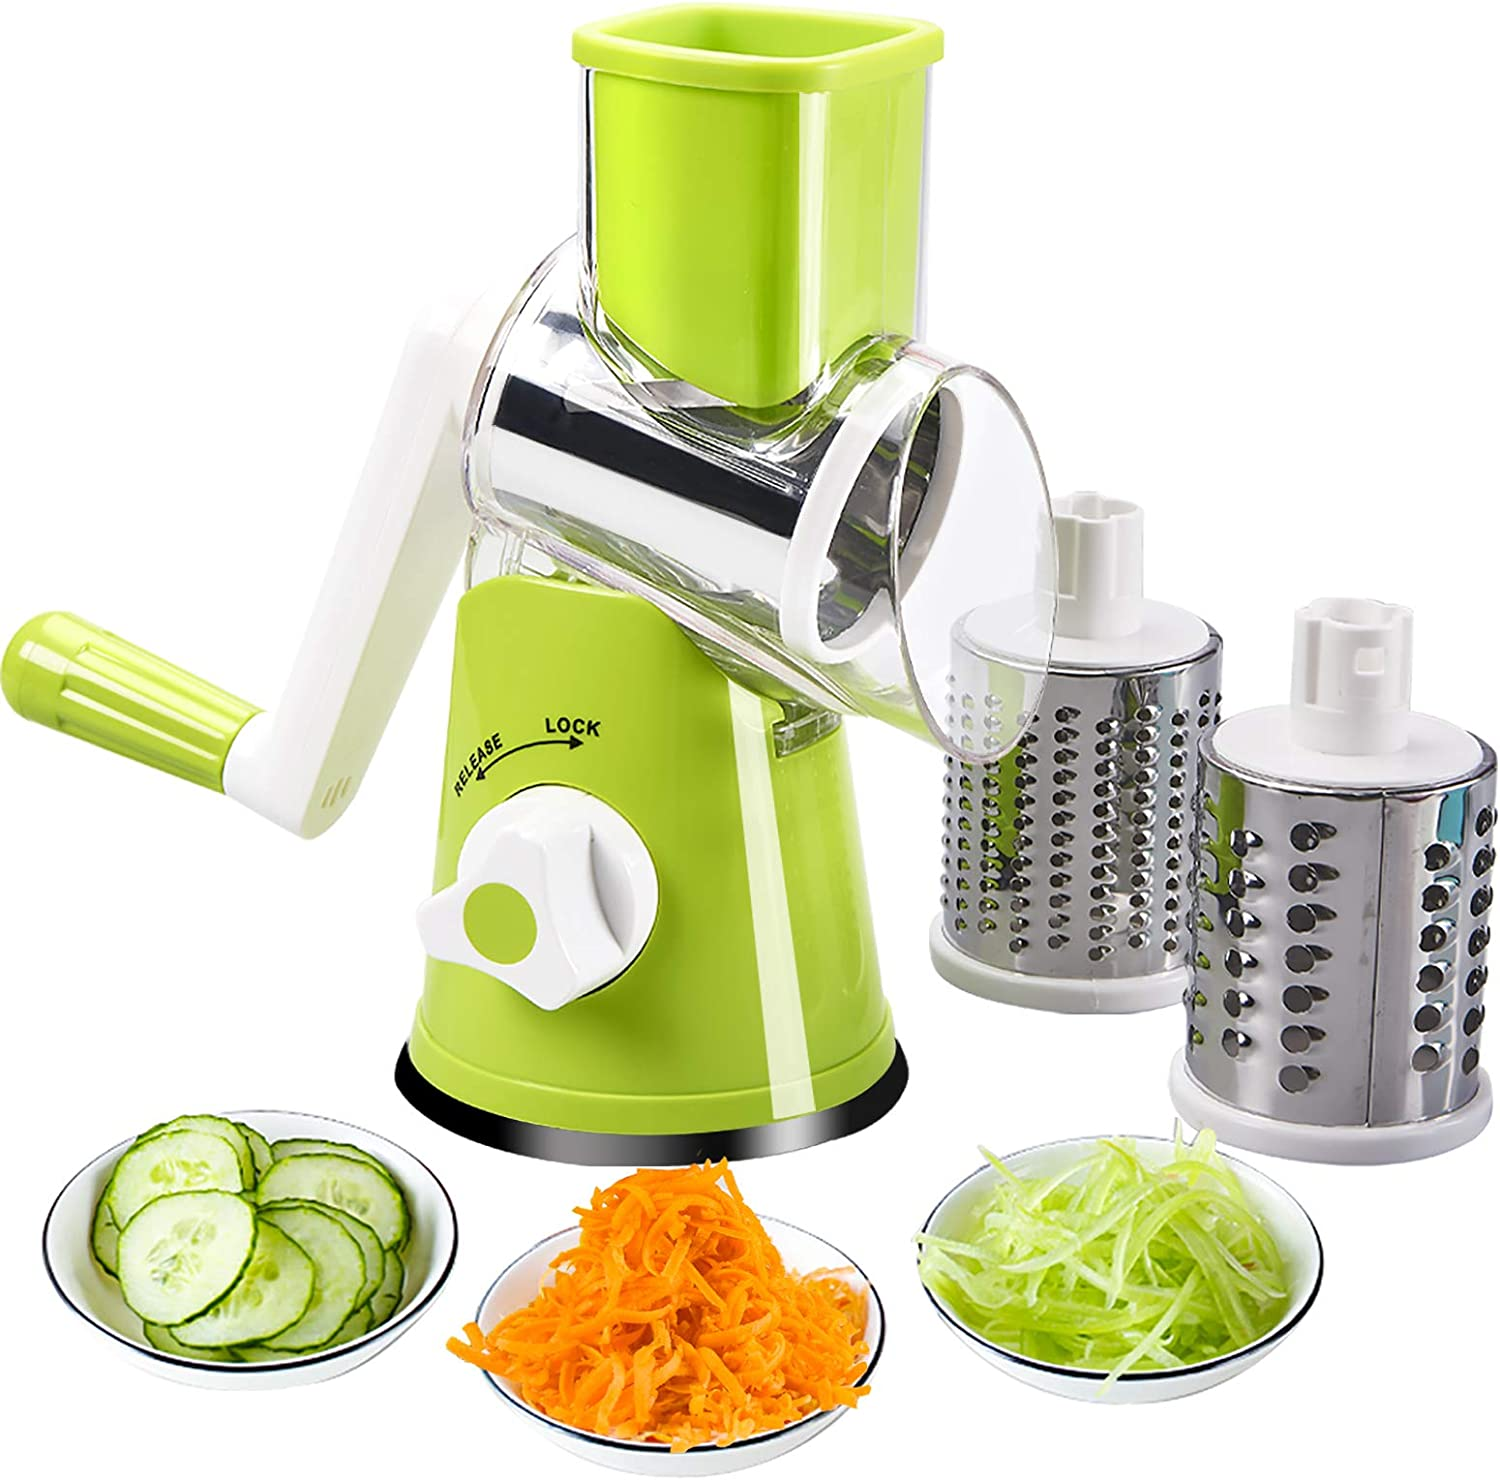 FAVIA Rotary Cheese Grater with Handle - Food Shredder with 3 Stainless Steel Drum Blades, Round Mandoline Slicer Nuts Grinder, BPA Free Dishwasher Safe (Green)